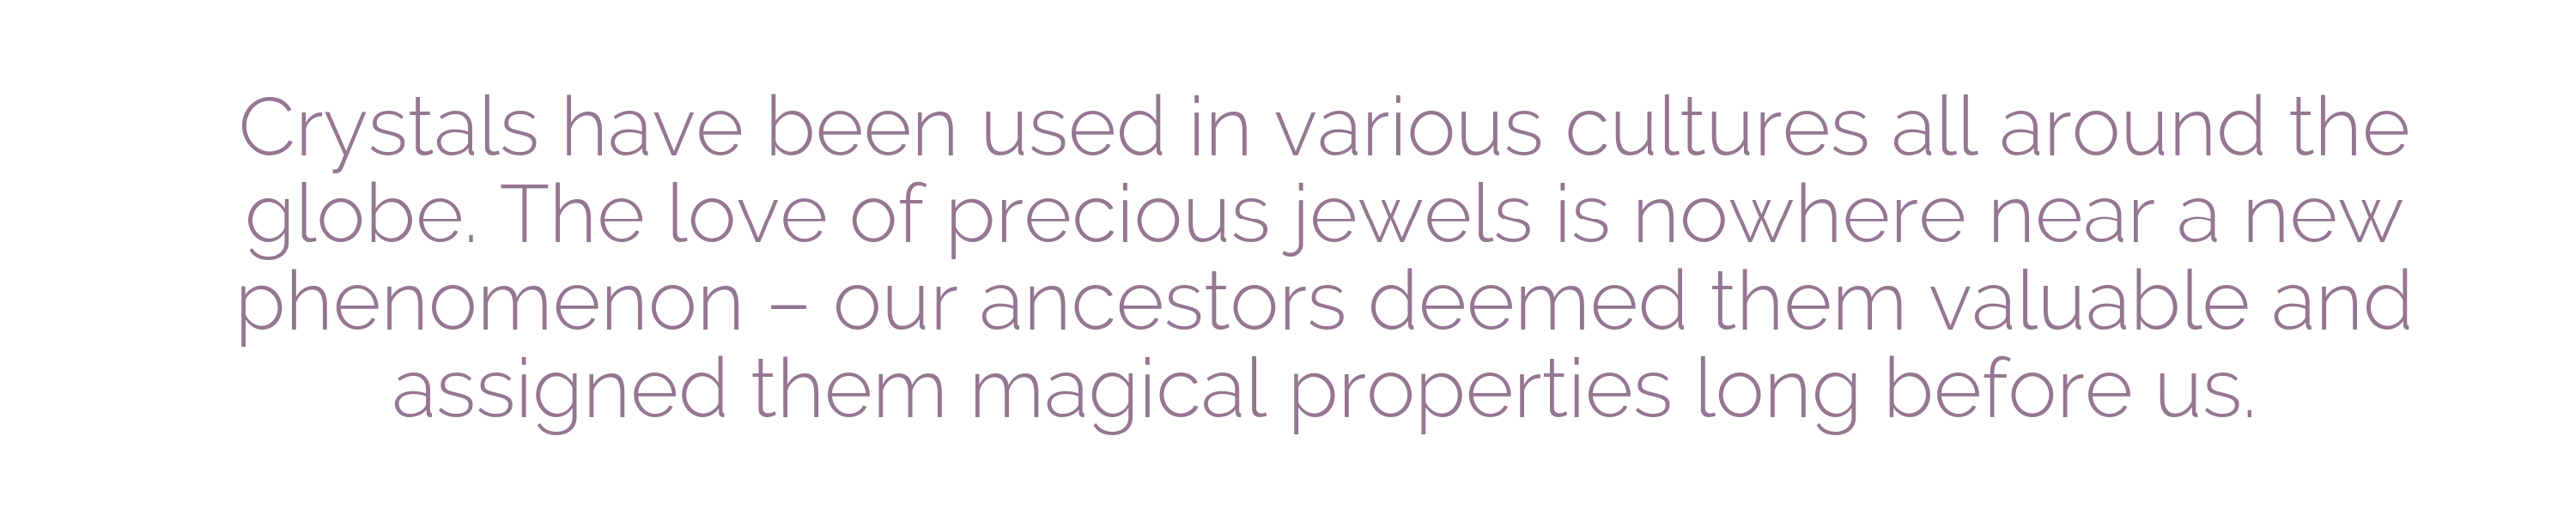 Crystals have been used in various cultures all around the globe. The love of precious jewels is nowhere near a new phenomenon – our ancestors deemed them valuable and assigned them magical properties long before us.